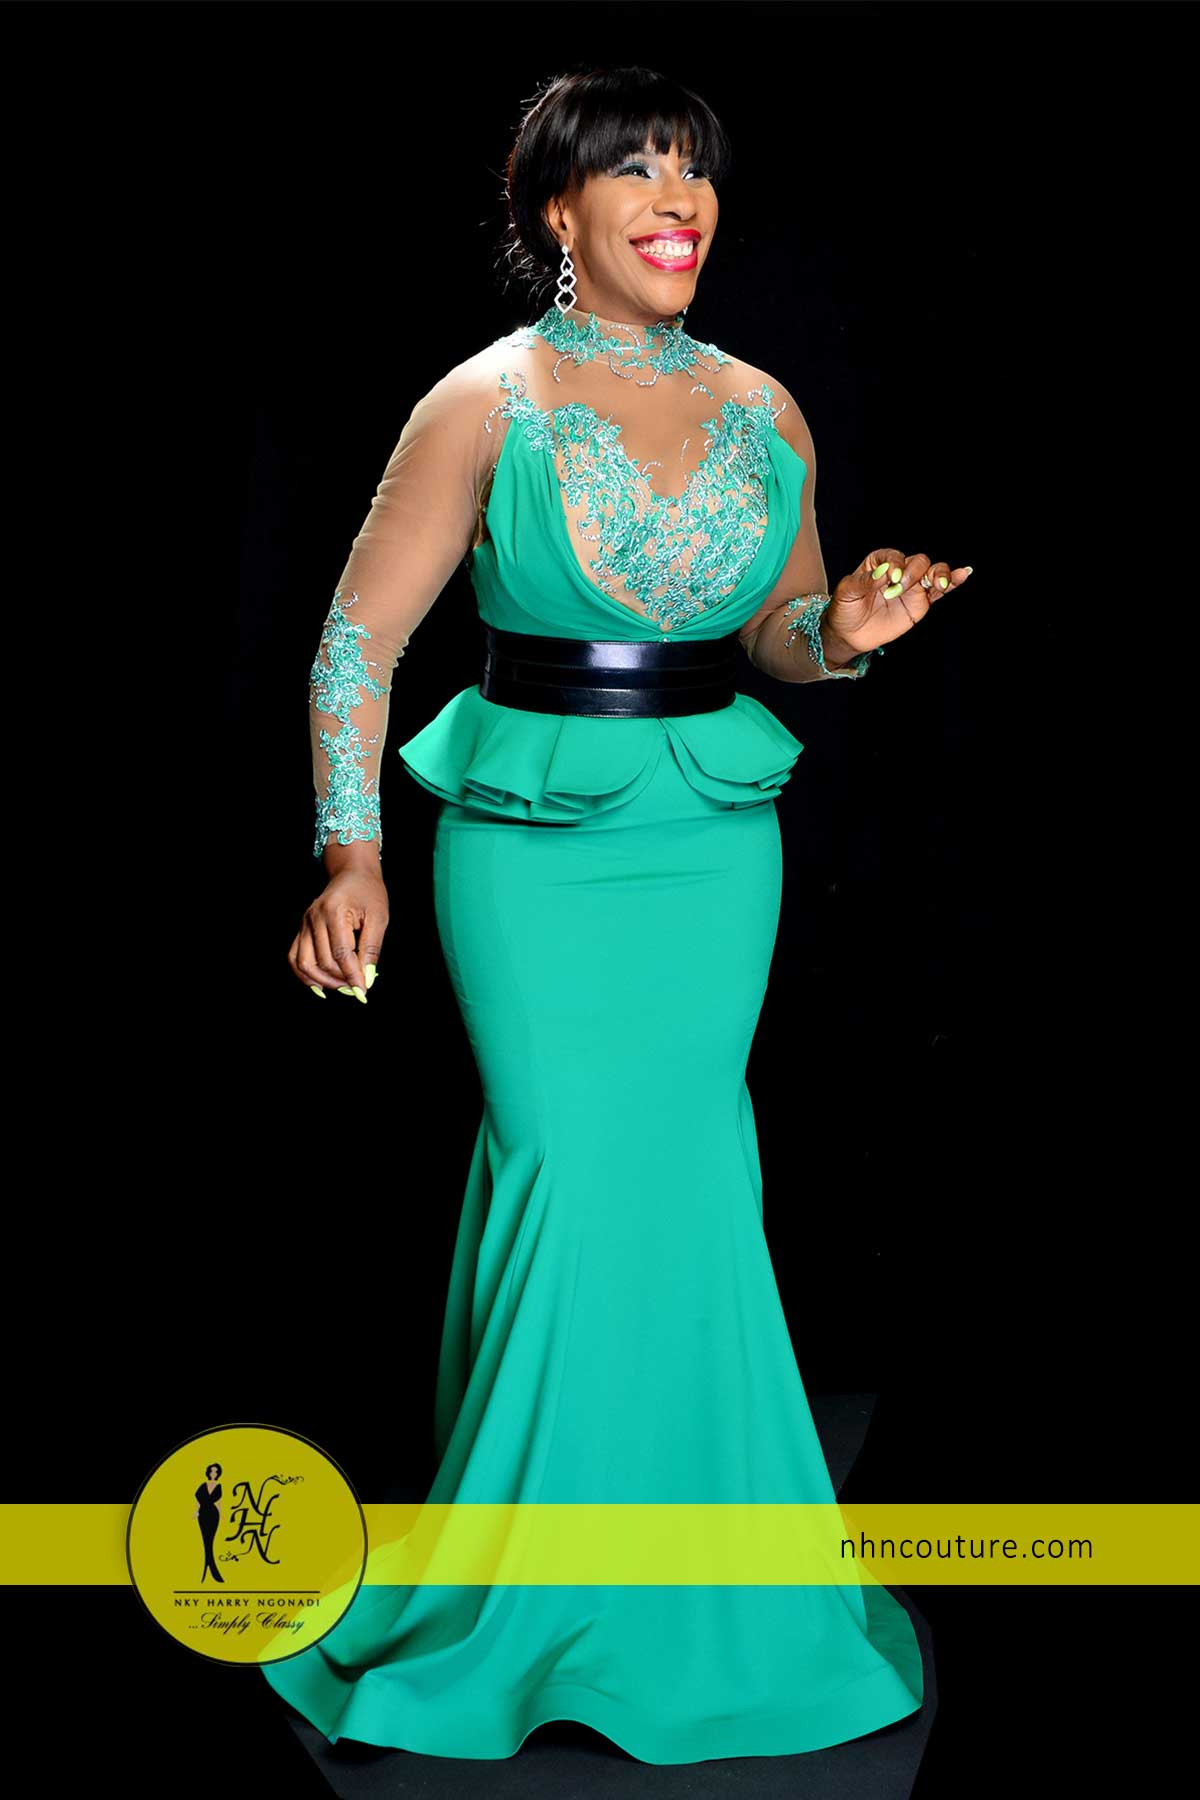 NHN-Couture-in-Fouad-Sarkis-Green-Evening-Gown-1